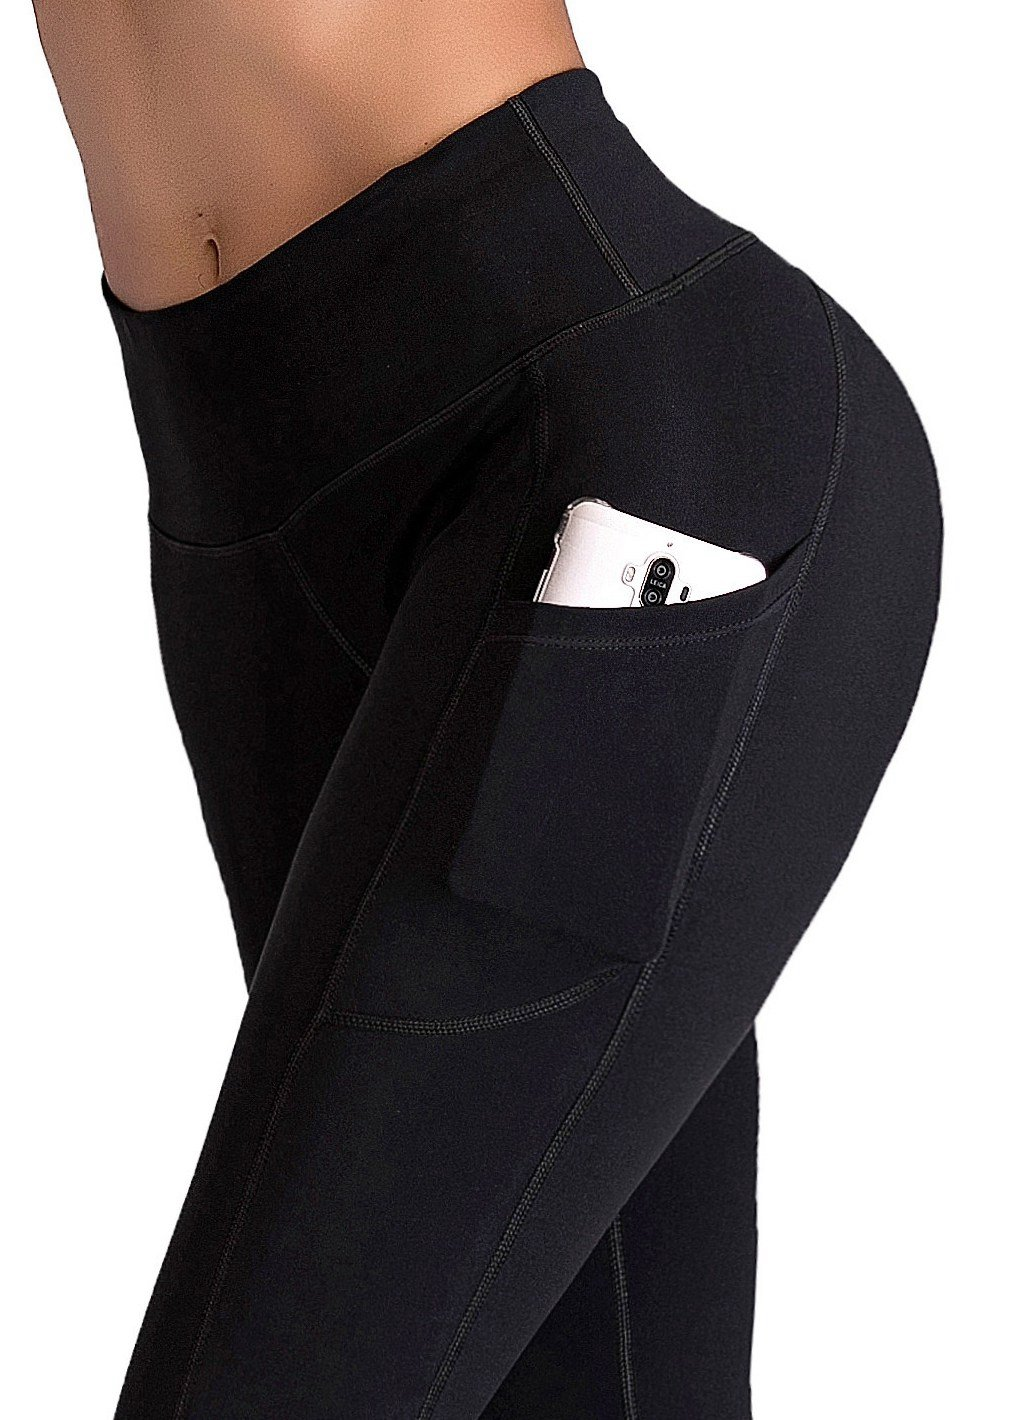 71Im2HgLvRL - IUGA Yoga Pants with Pockets, Workout Running Leggings with Pockets for Women